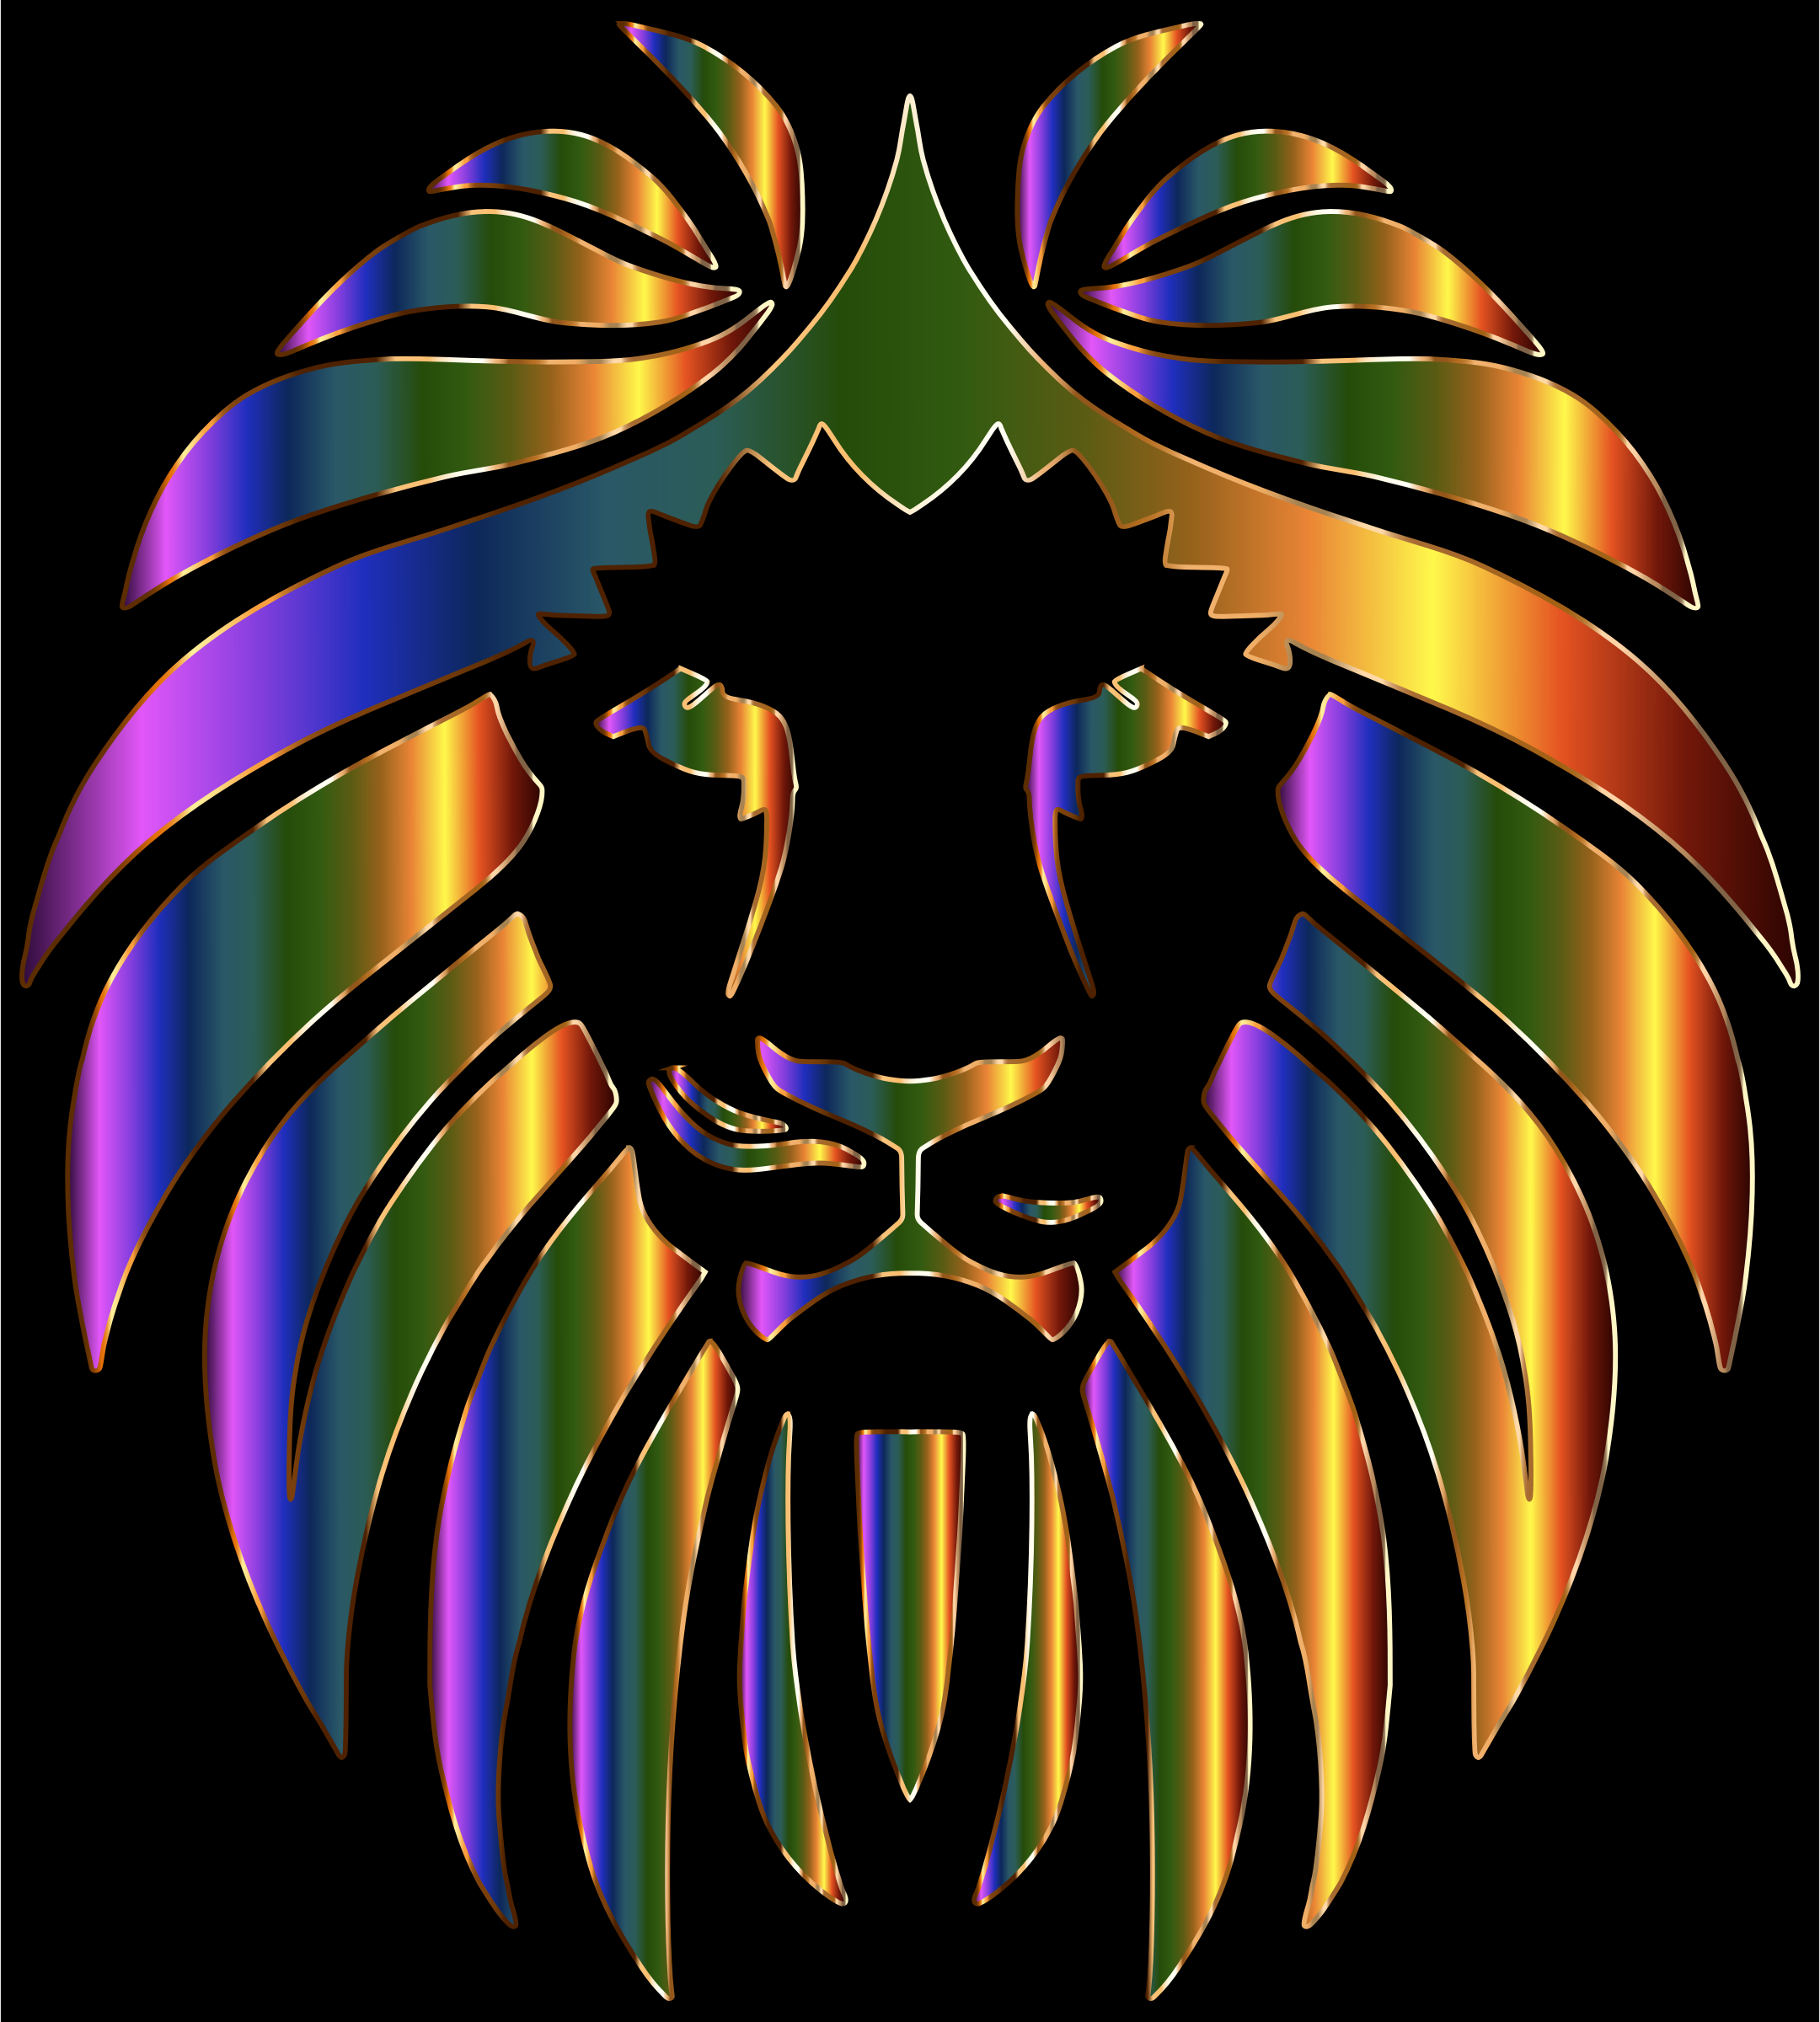 Prismatic Lion by GDJ